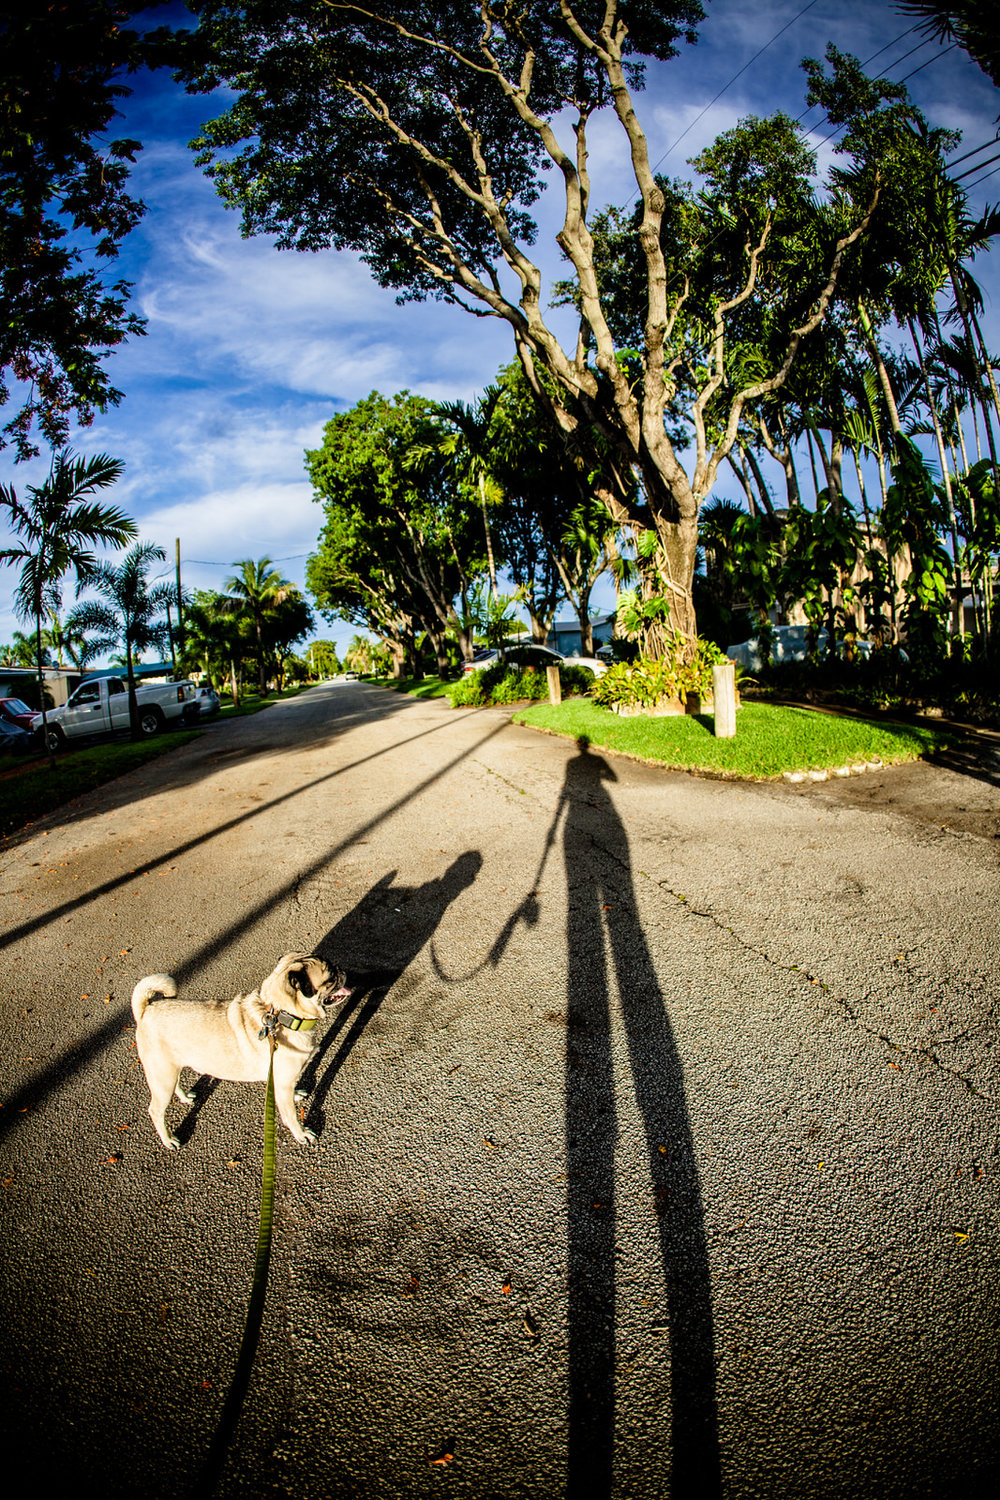 pug_shadow_trees_beautiful_day_florida.jpg